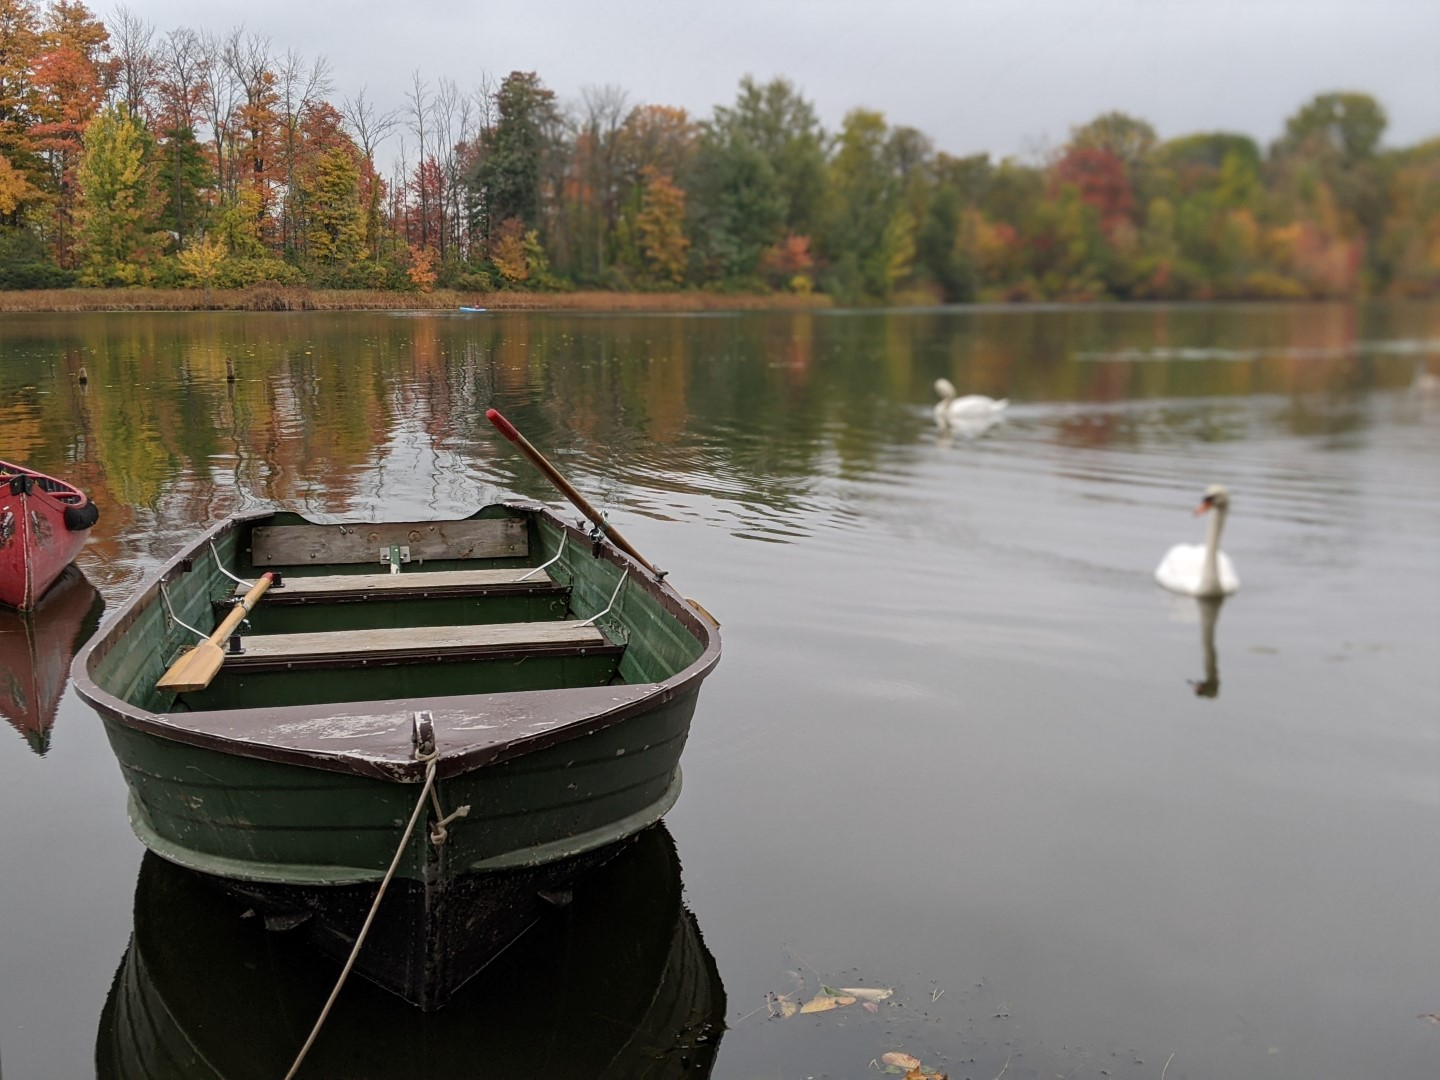 row boat on avon river with Stratford Swan